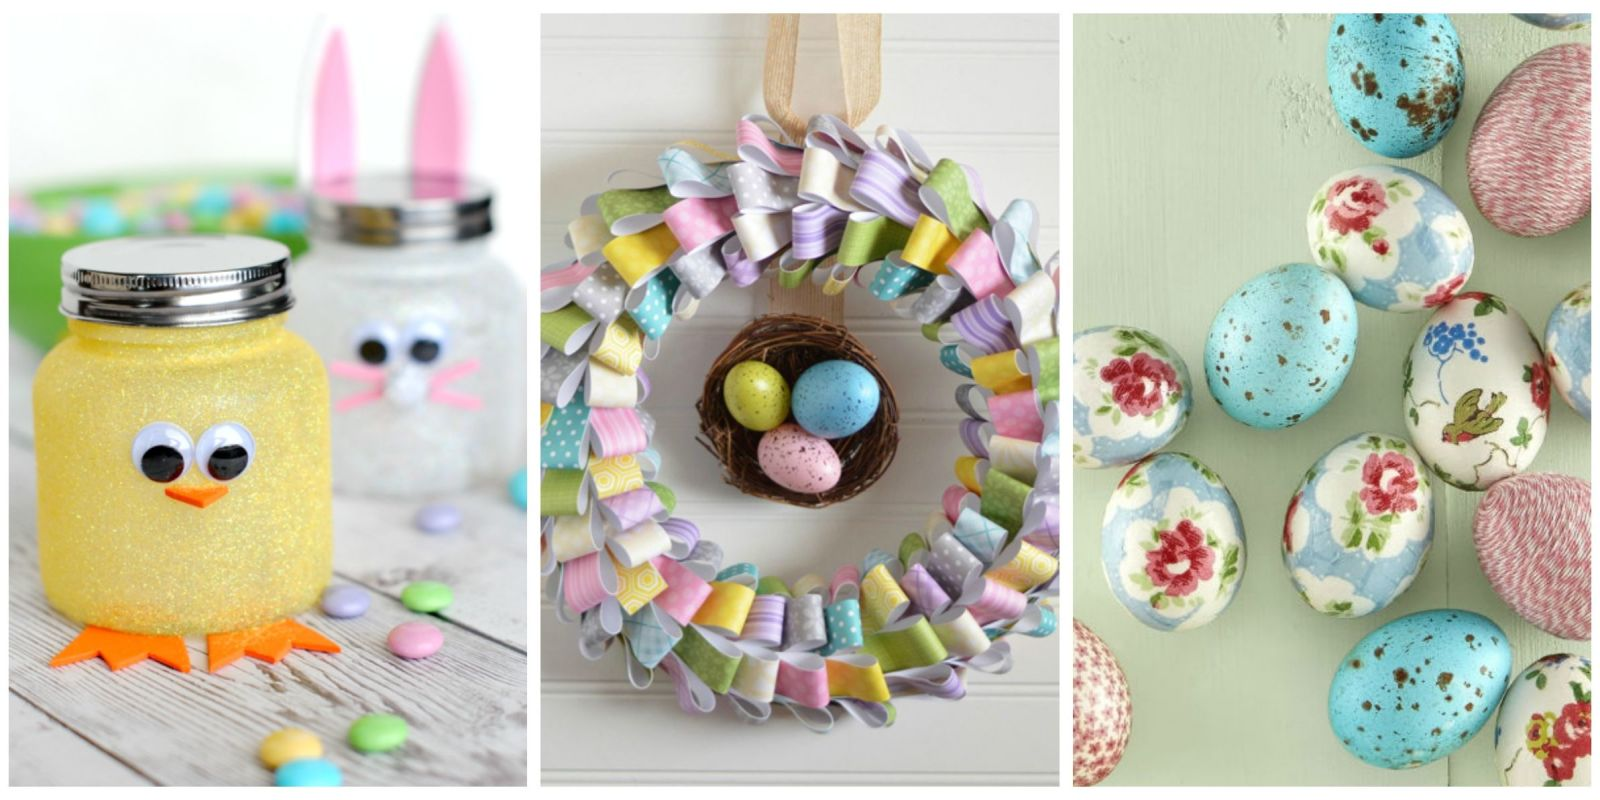 Homemade crafts to make - 60 Easy Easter Crafts Ideas For Easter Diy Decorations Gifts Country Living